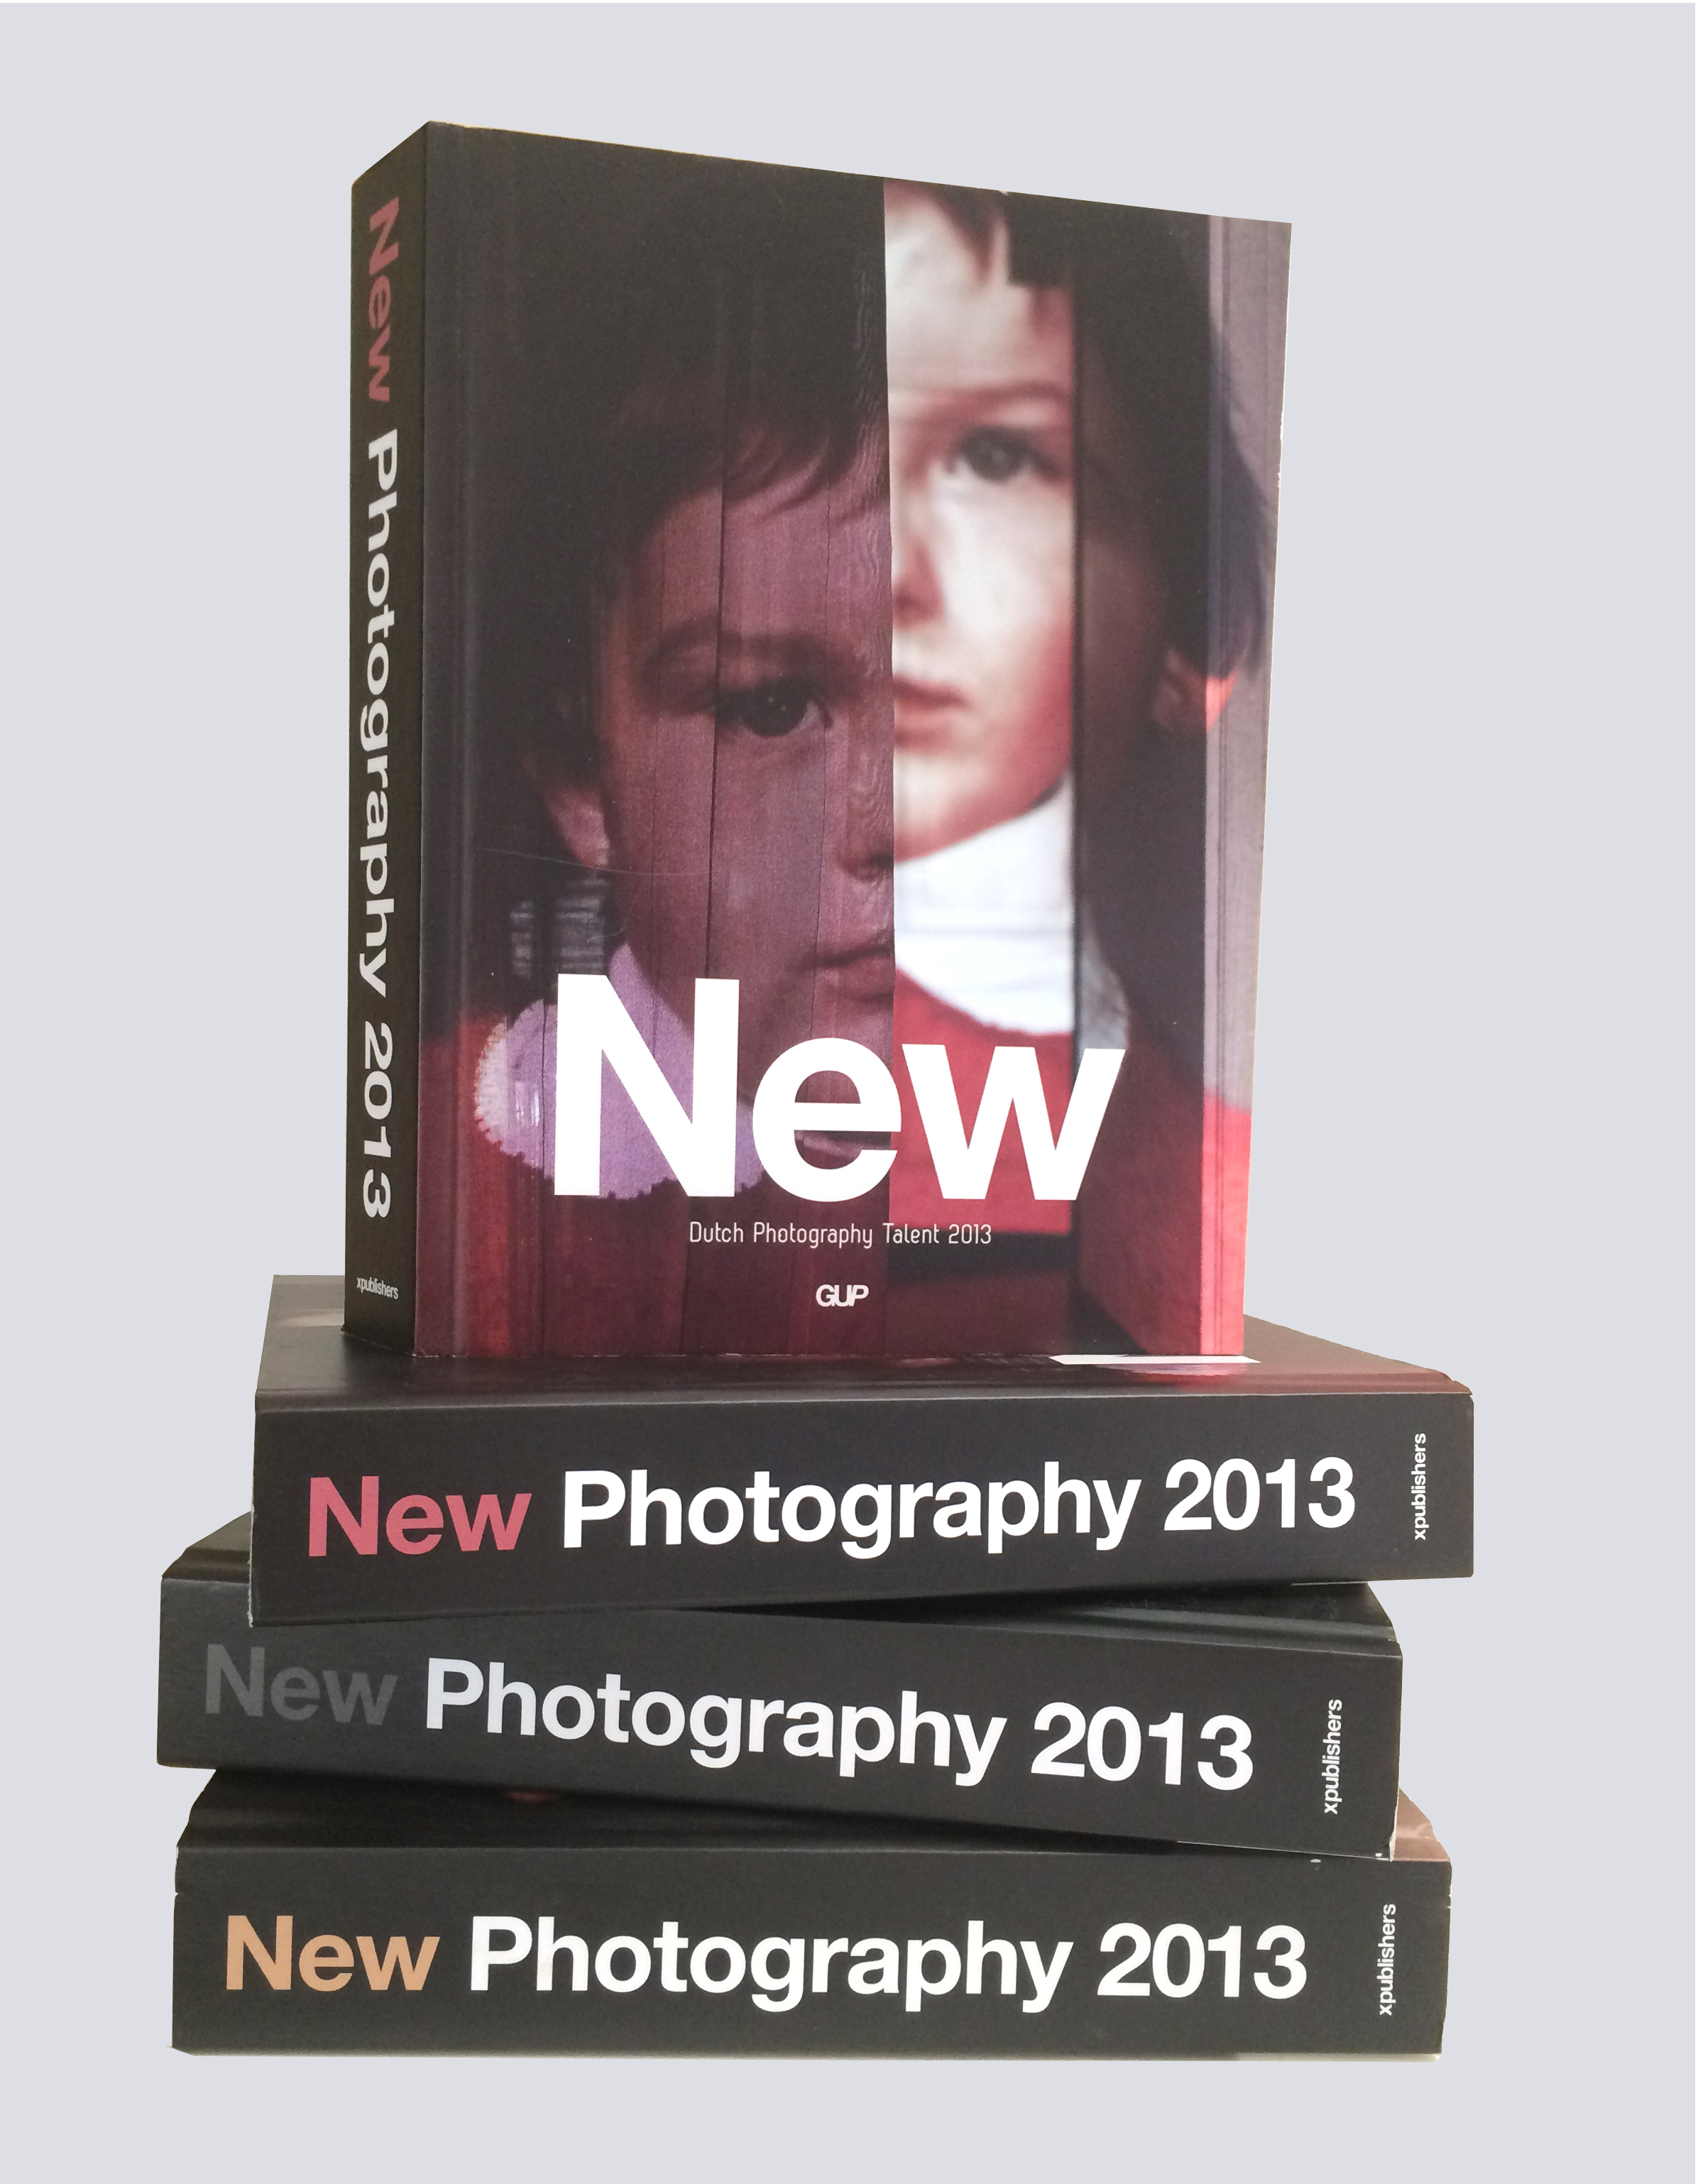 GUP New Photography Talent 2013 - BOOKS